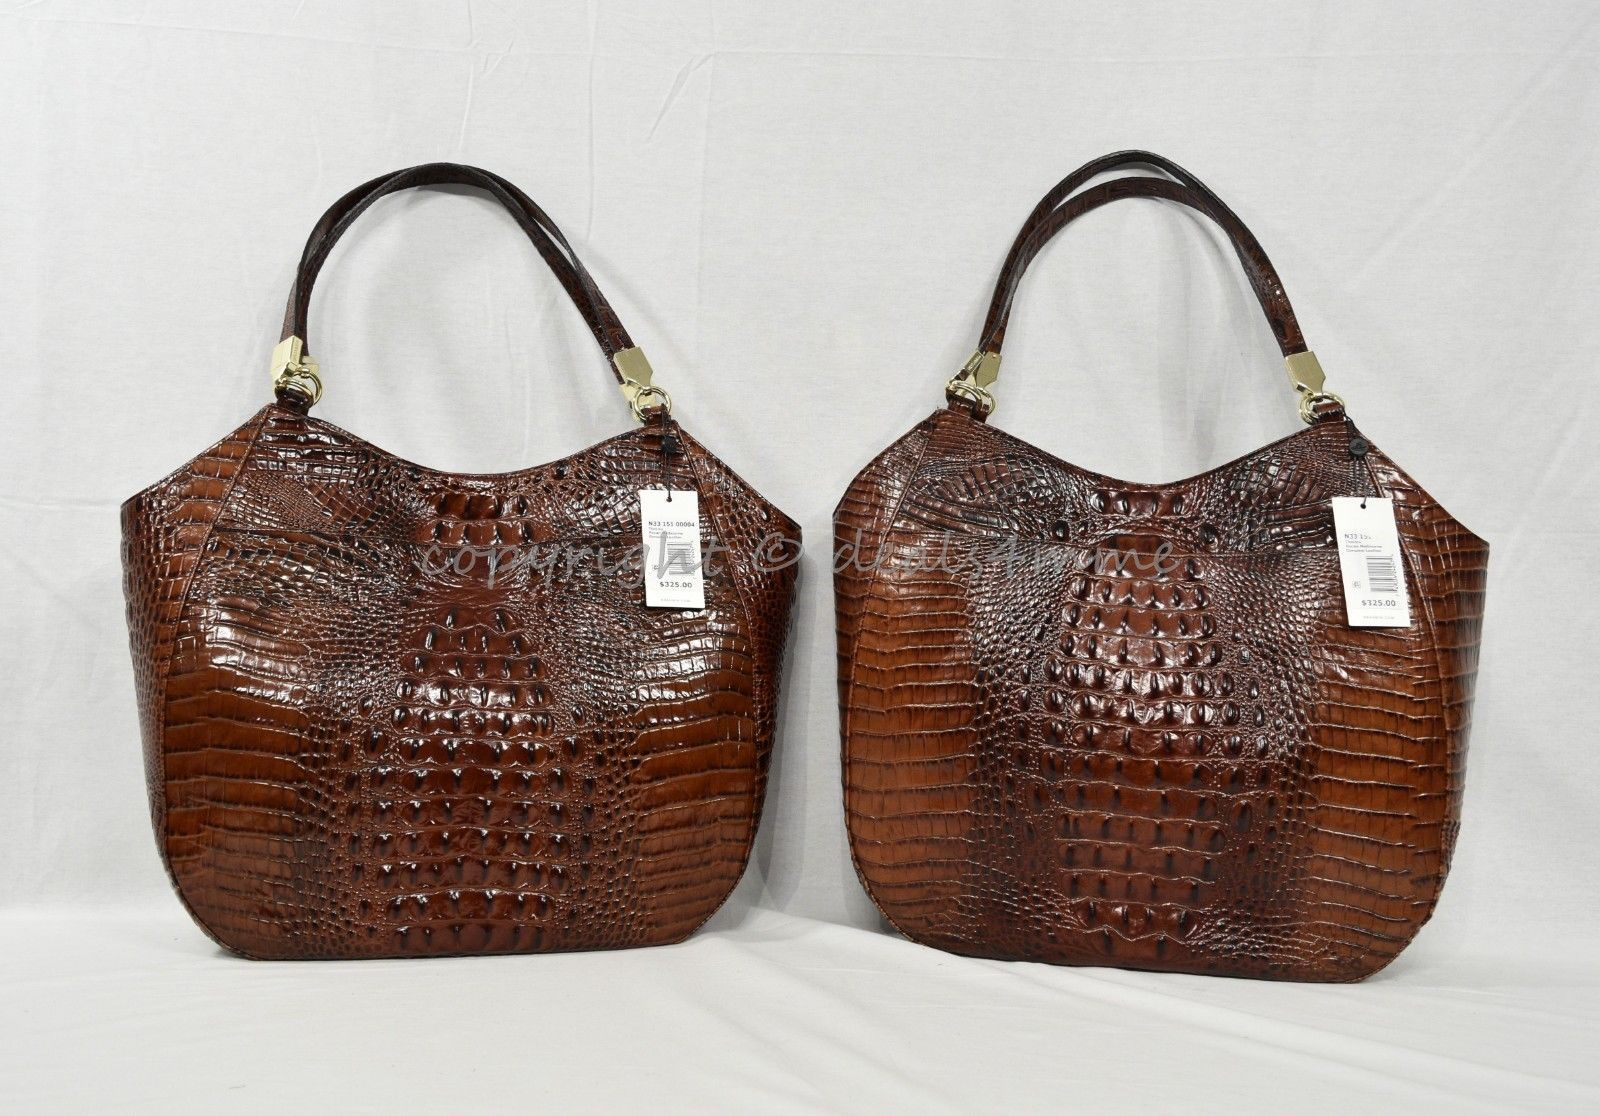 NWT Brahmin Thelma Tote / Shoulder Bag/Tote in Pecan Melbourne Embossed Leather image 10